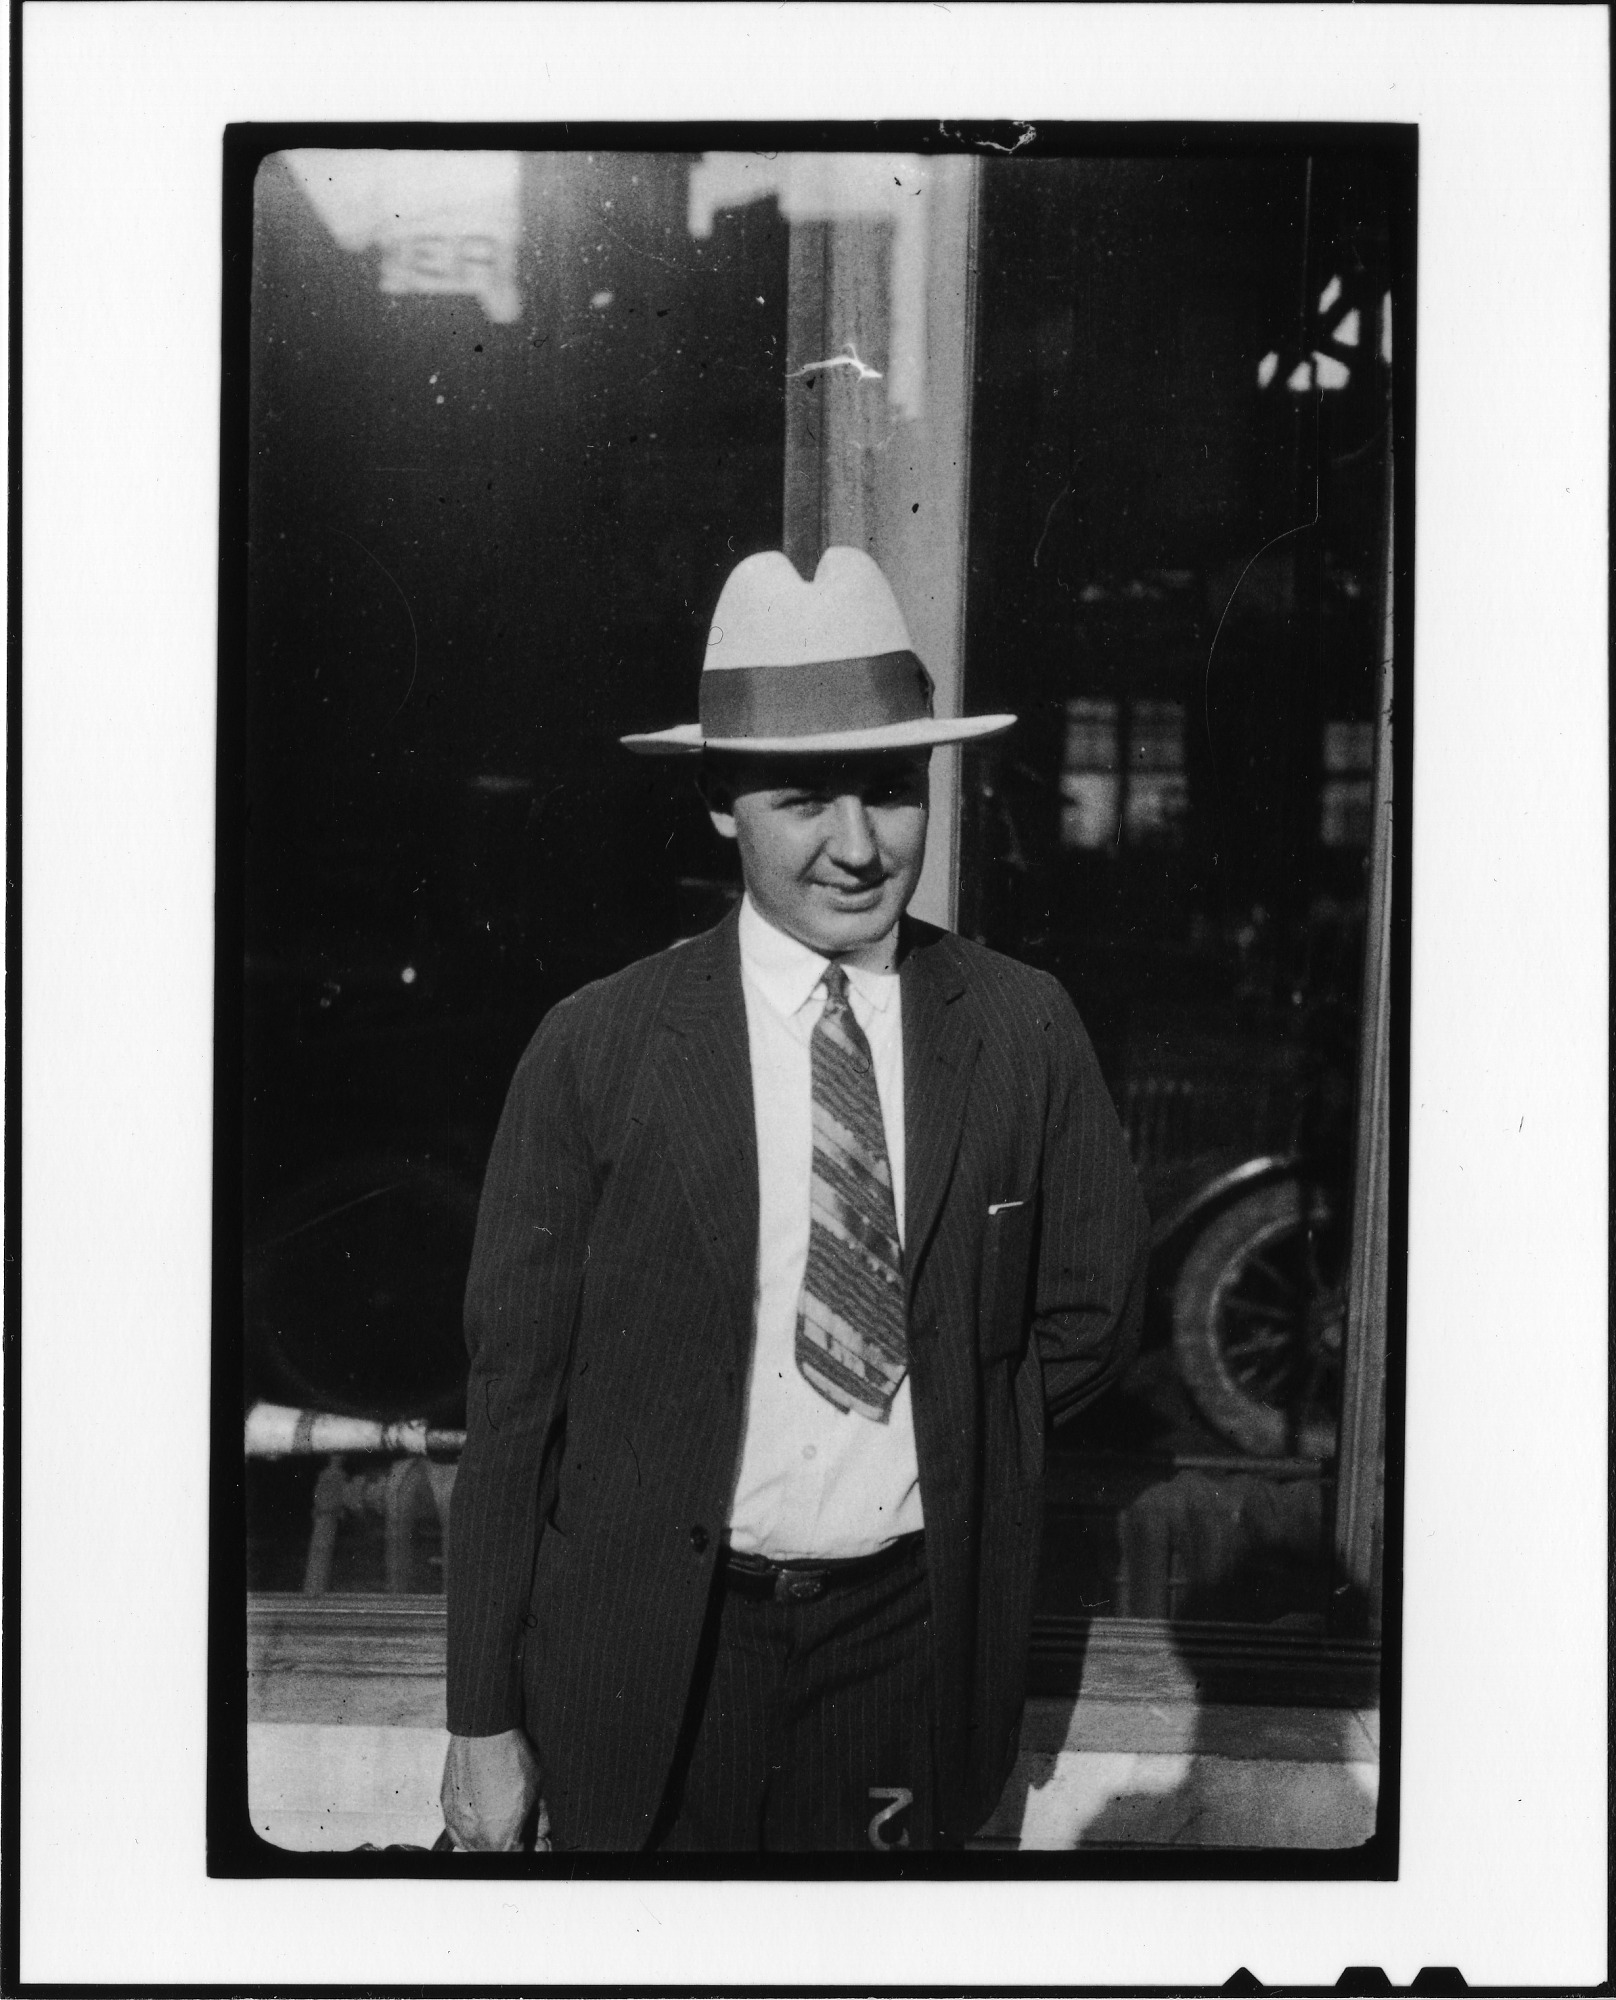 Tennessee v. John T. Scopes Trial: Unidentified man in front of auto dealership, Dayton, Tennessee